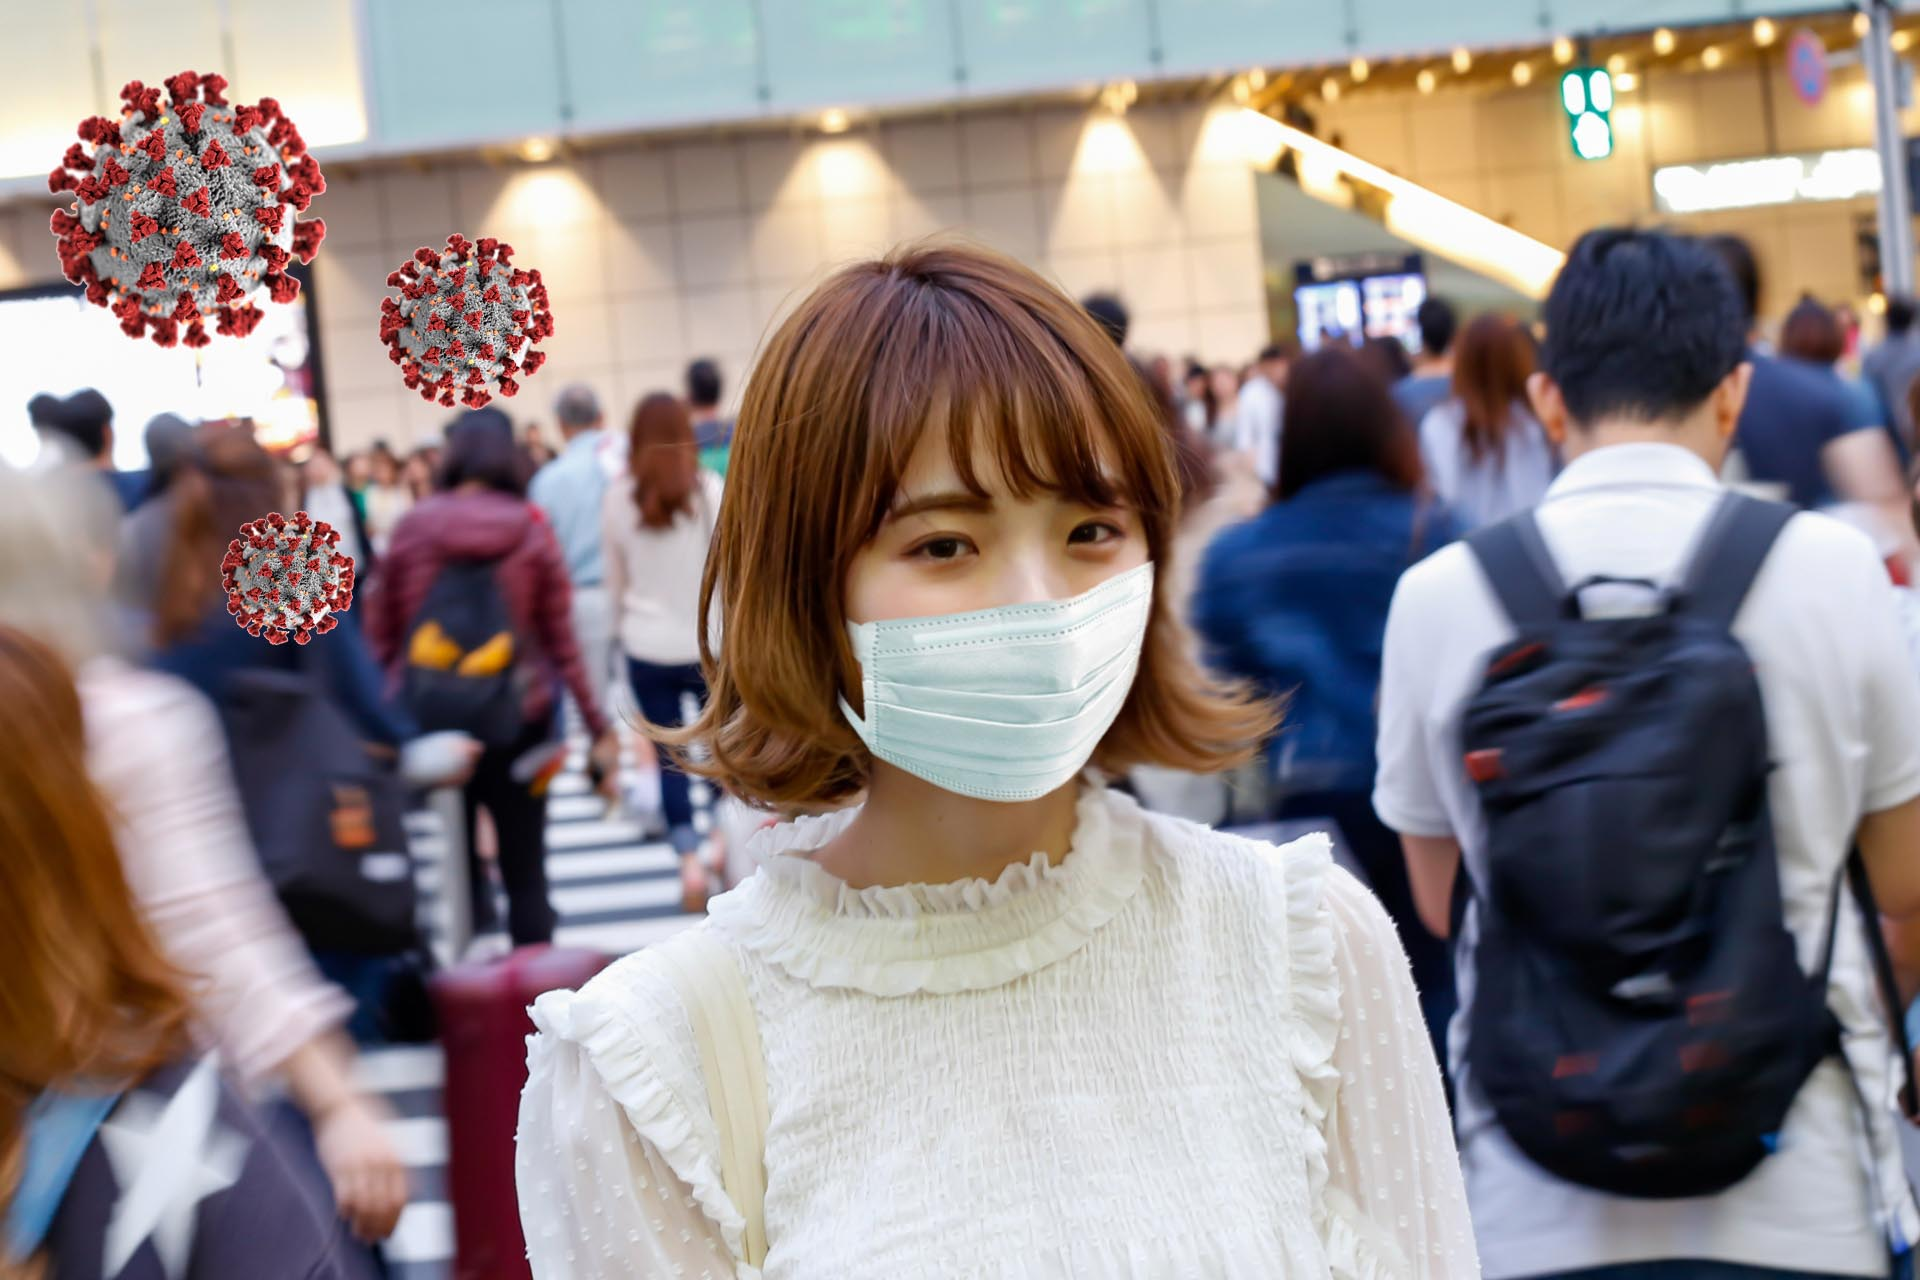 The Impact Of The COVID-19 Pandemic On Advertisers In Japan